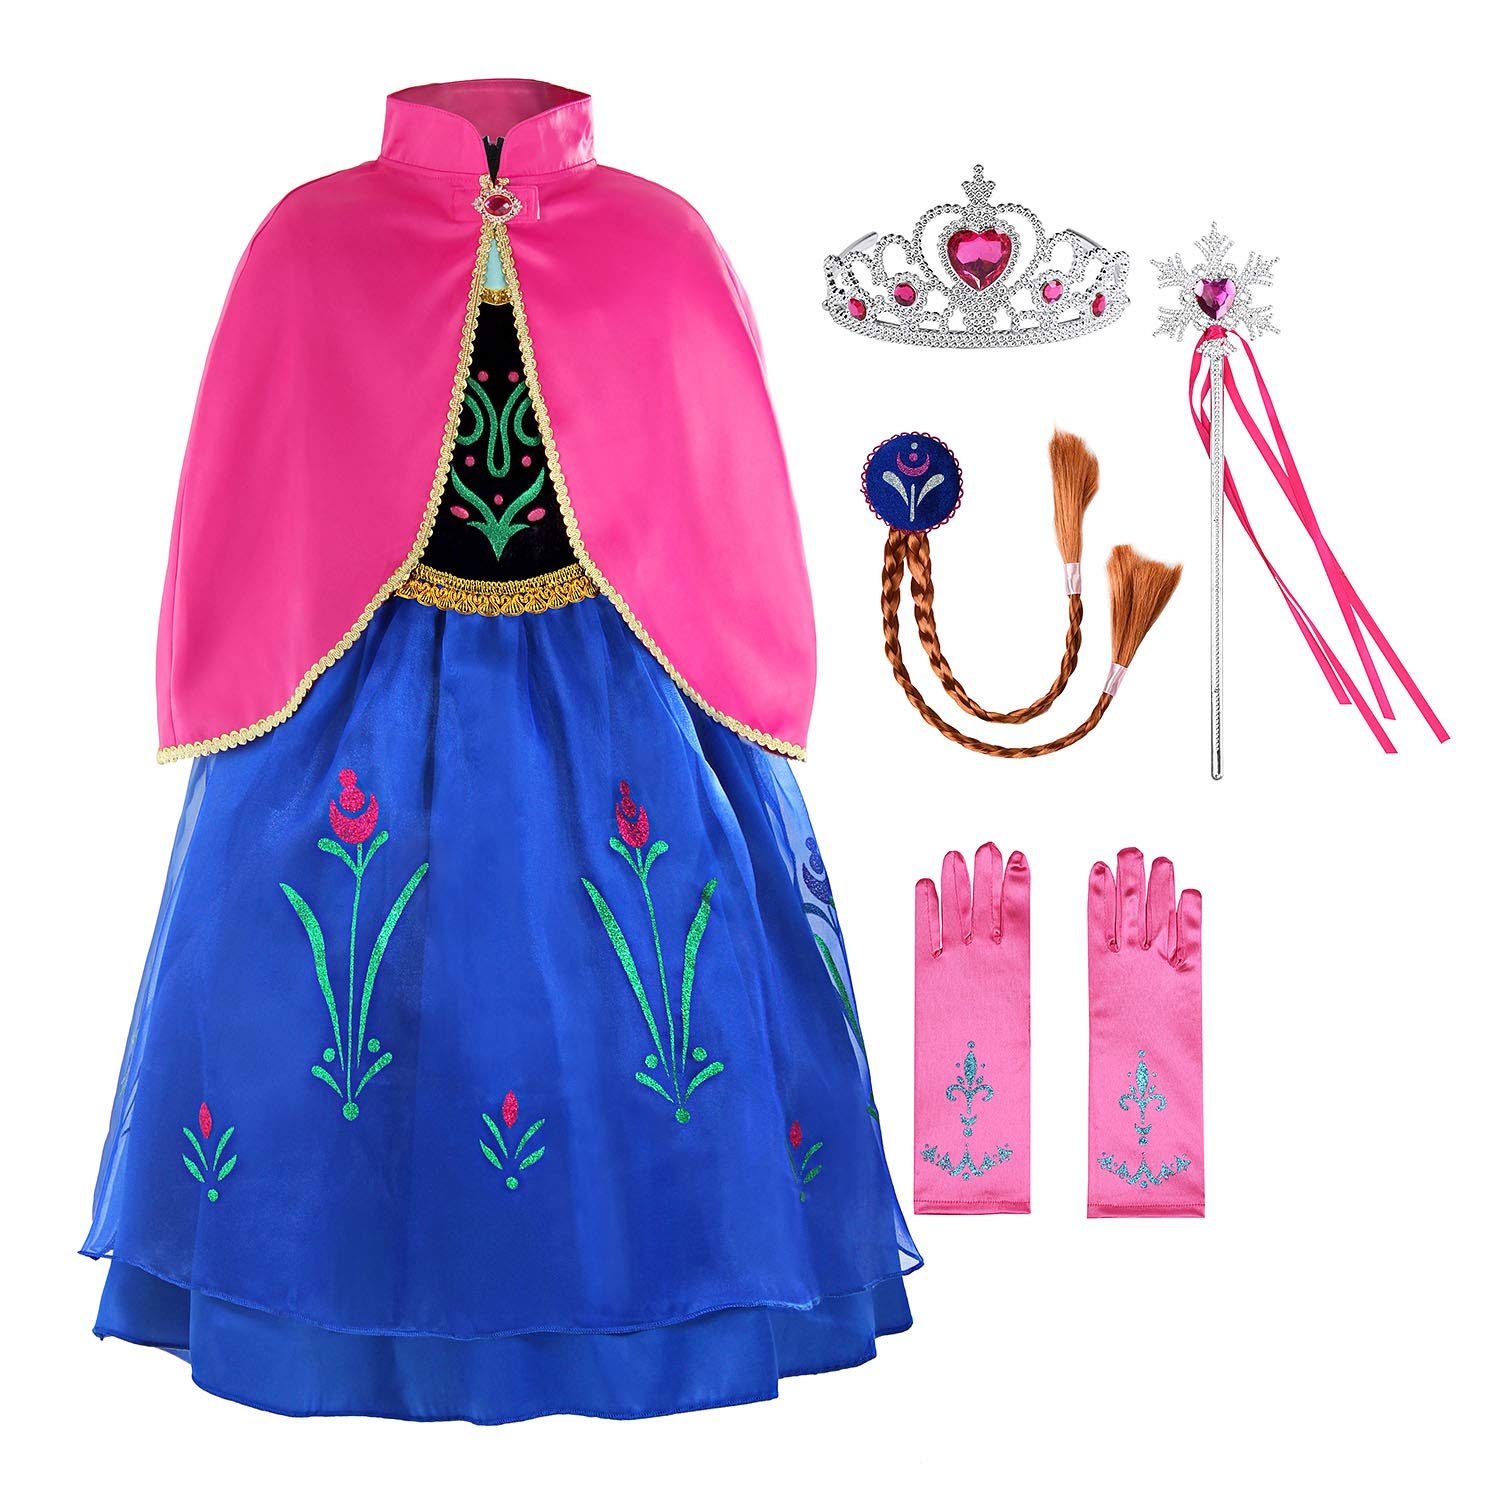 ReliBeauty Little Girls G8180 Retro Princess Anna Fancy Dress Costume with Accessories, 3T, Blue